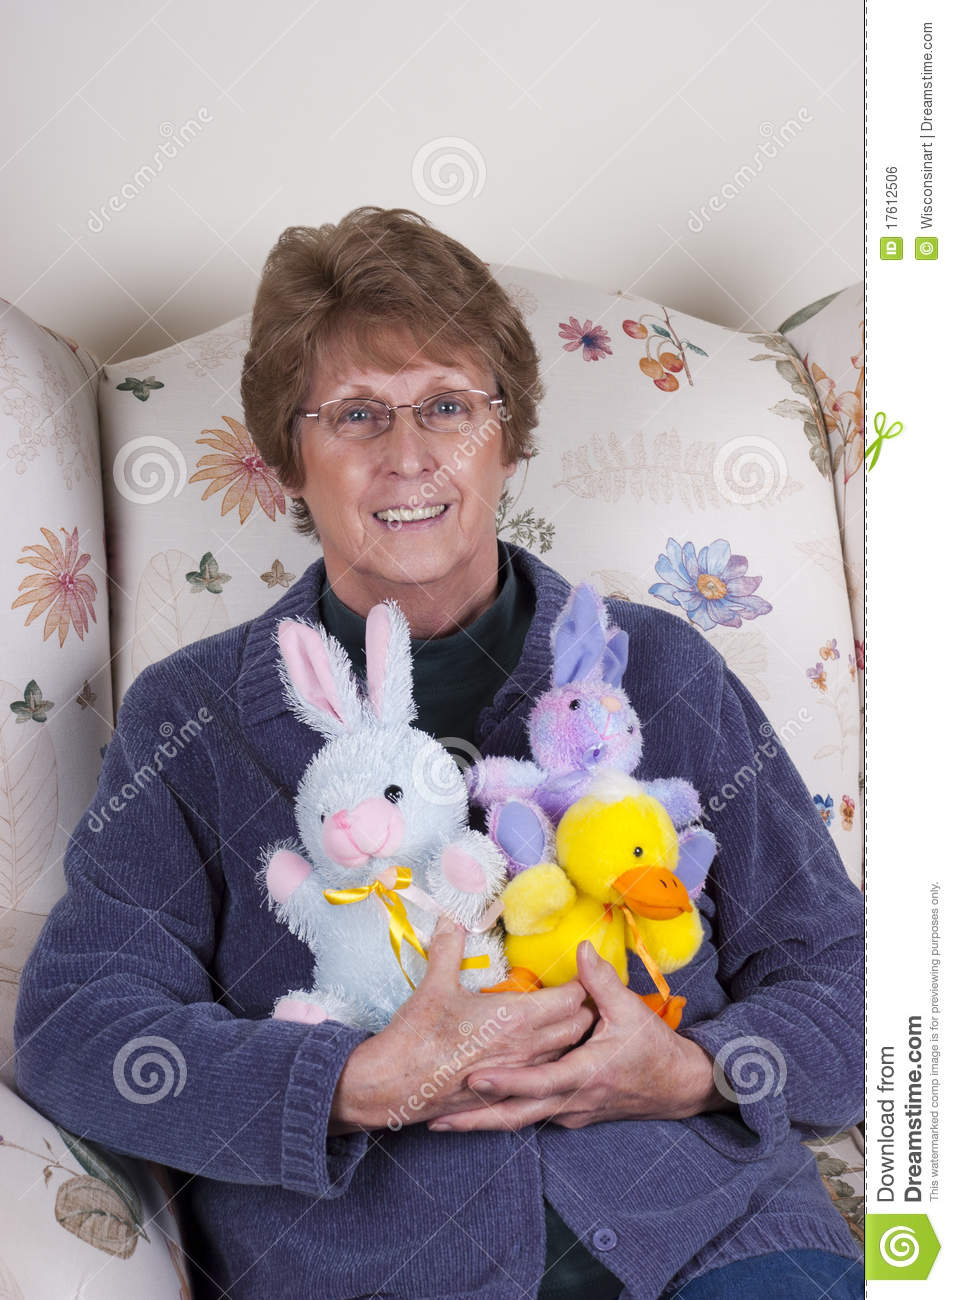 Toys For Seniors : Senior mature woman easter bunny stuffed toys royalty free